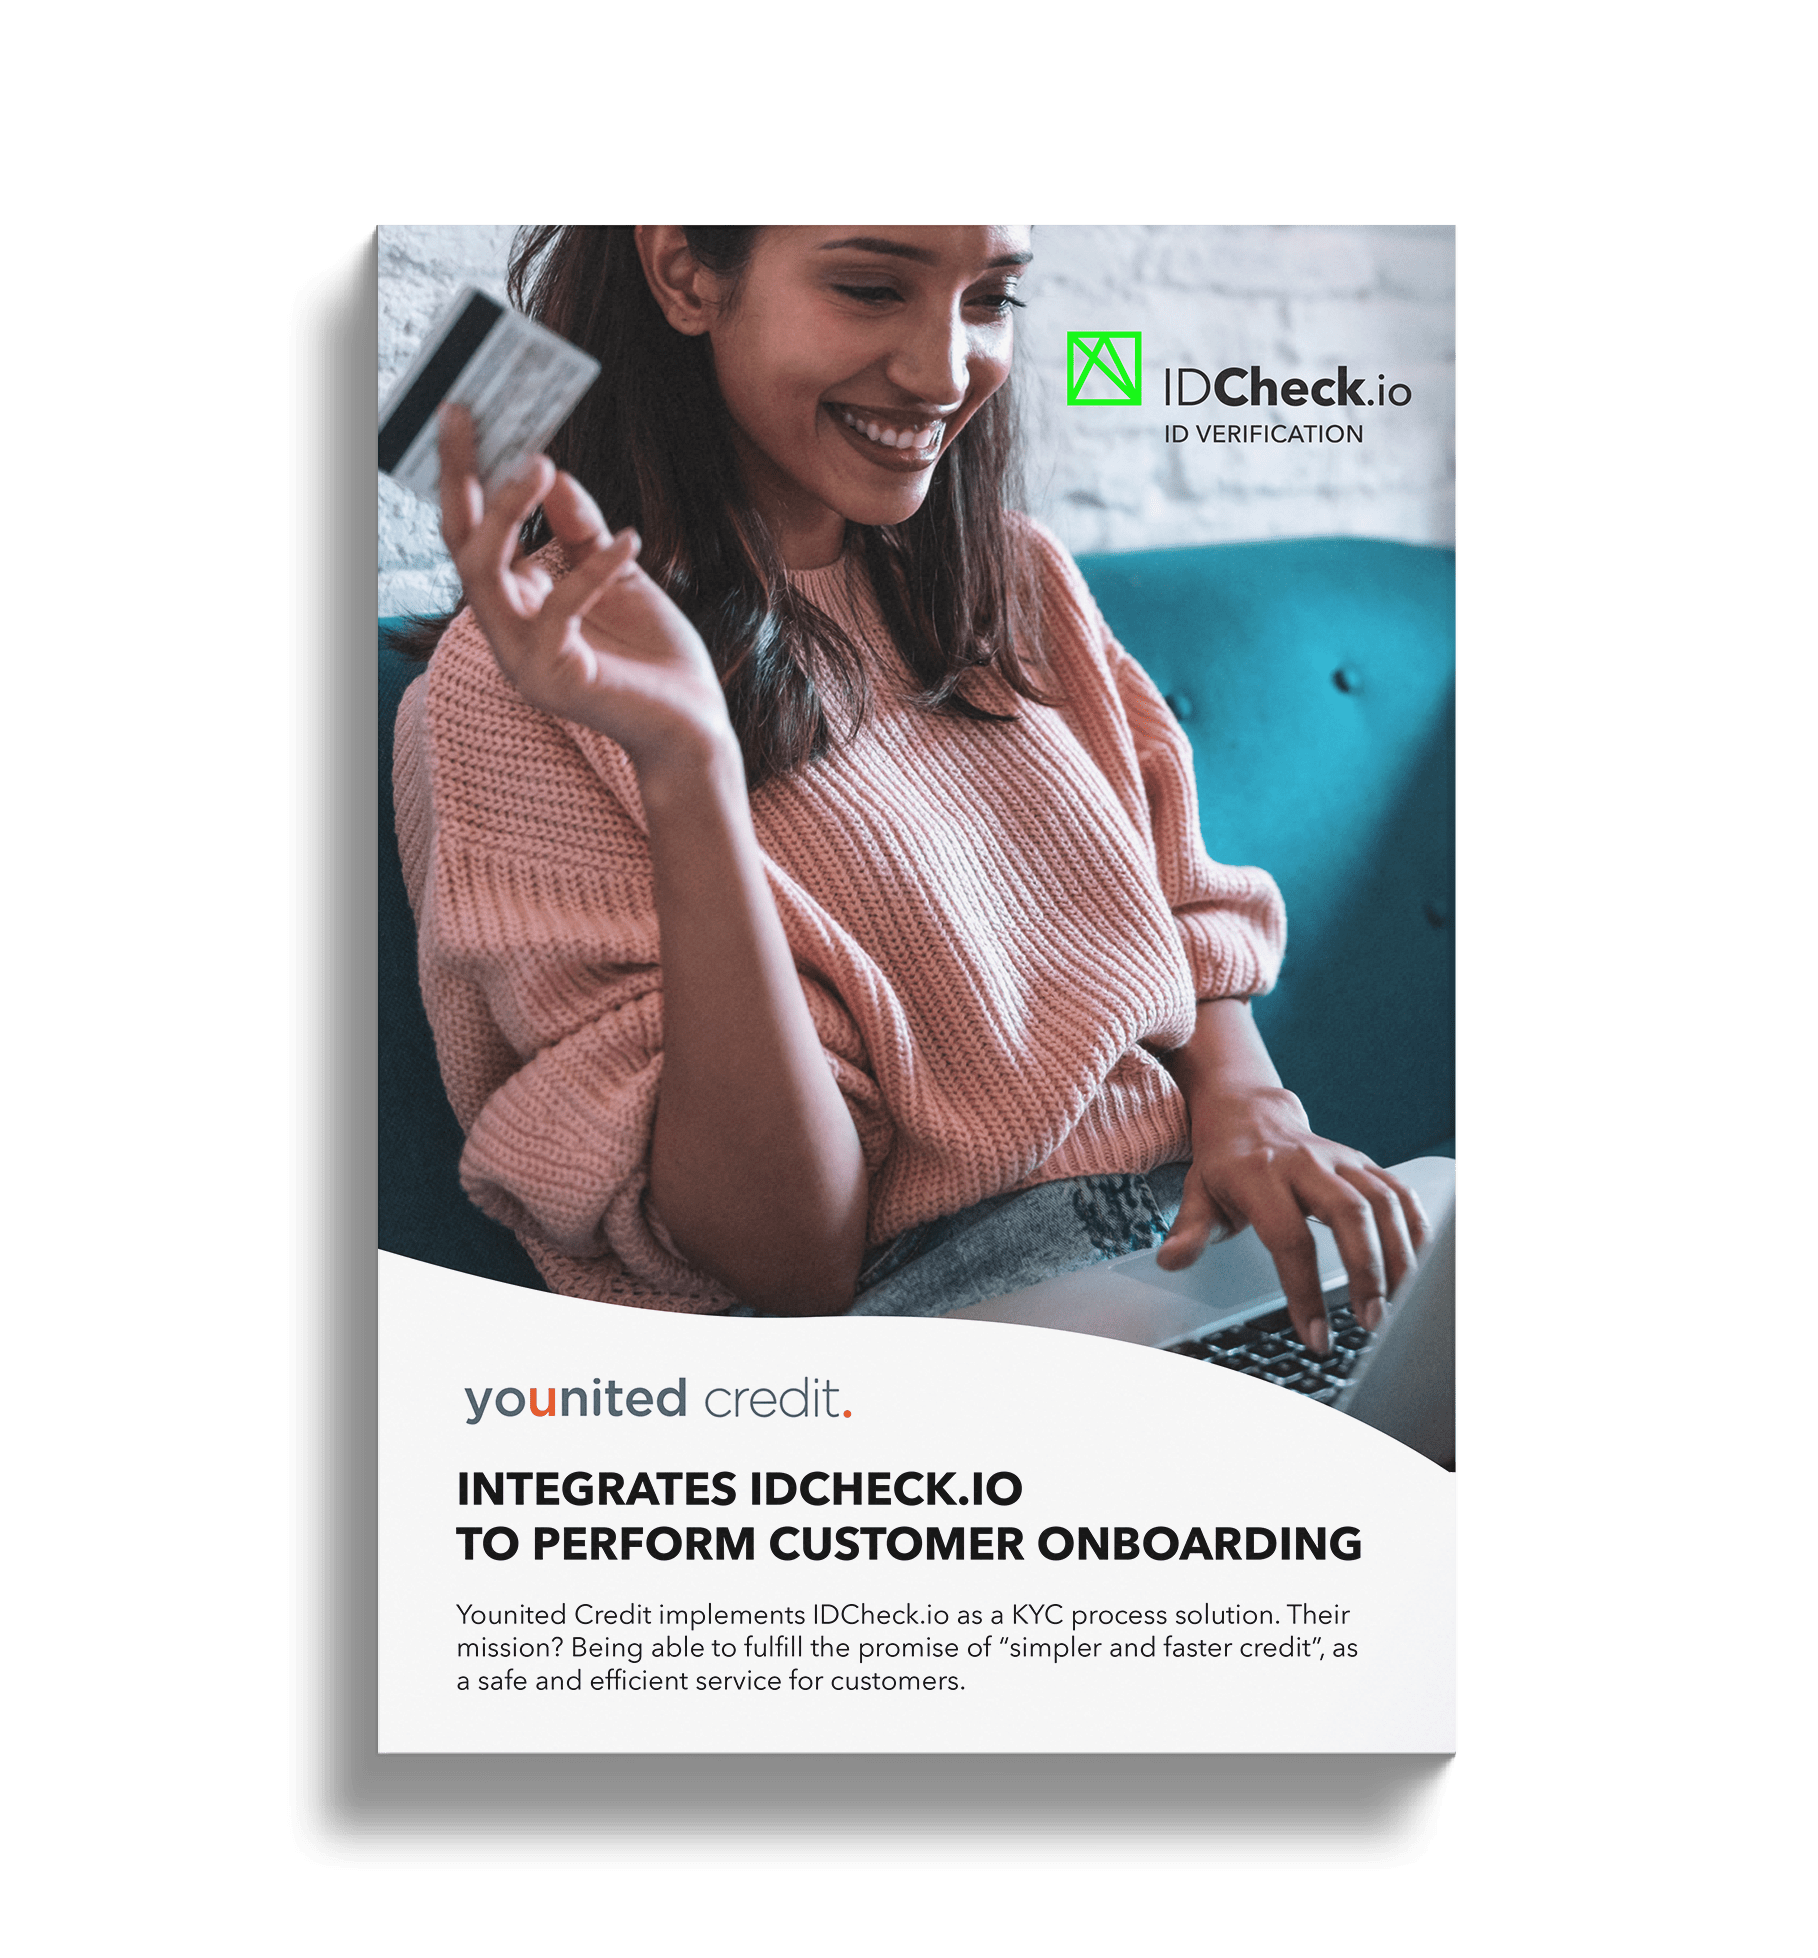 Younited Credit improves customer onboarding